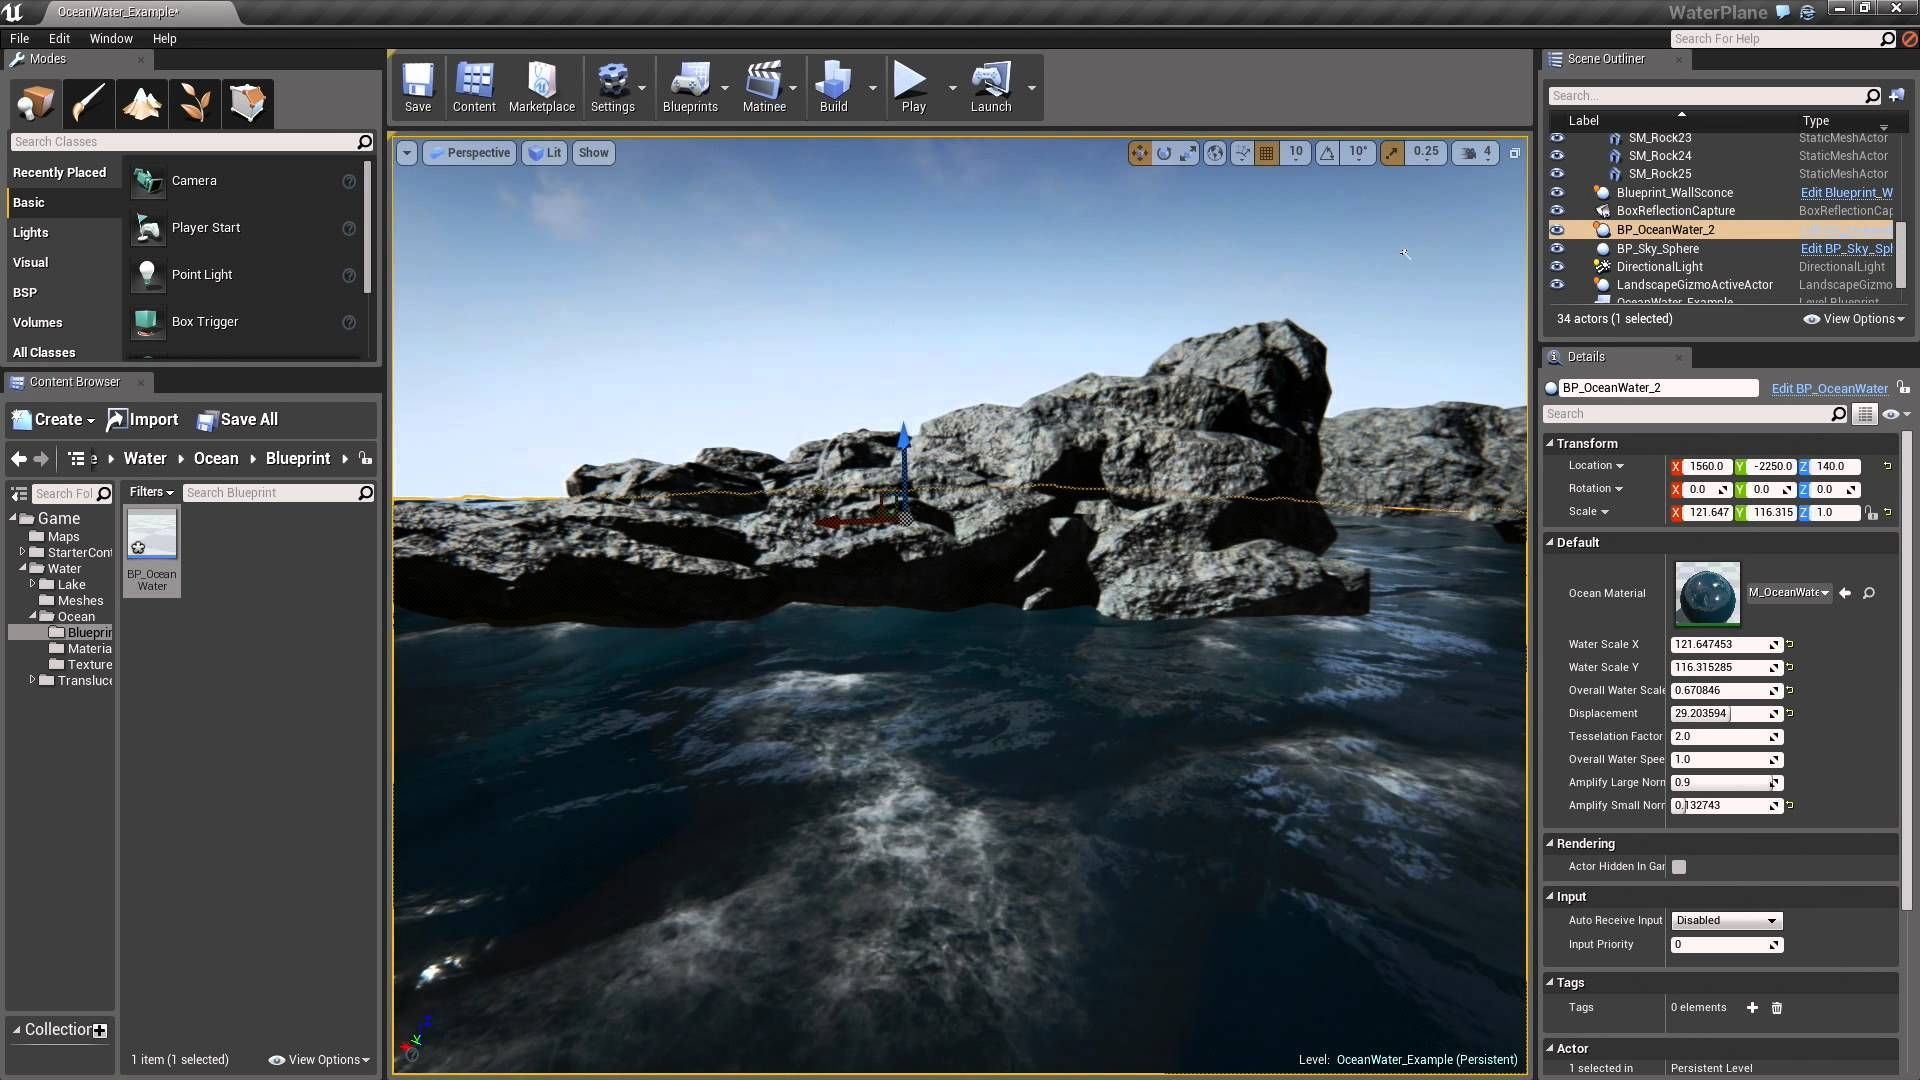 Water Surface Overview in UE4 | Unreal Engine 4 Tutorials | Unreal